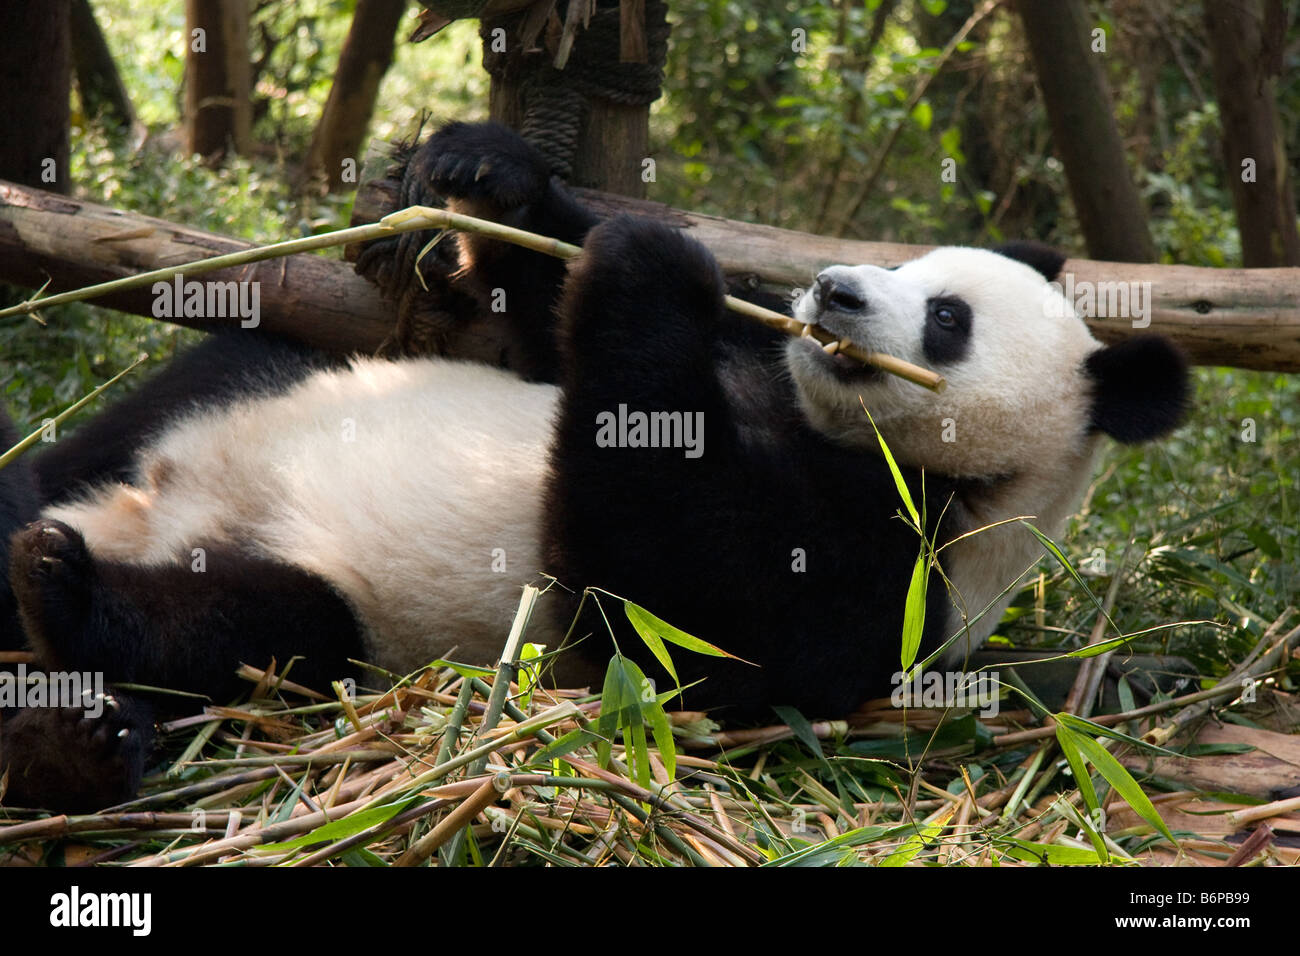 Panda bear eating bamboo inside Chengdu' s breeding center - Stock Image